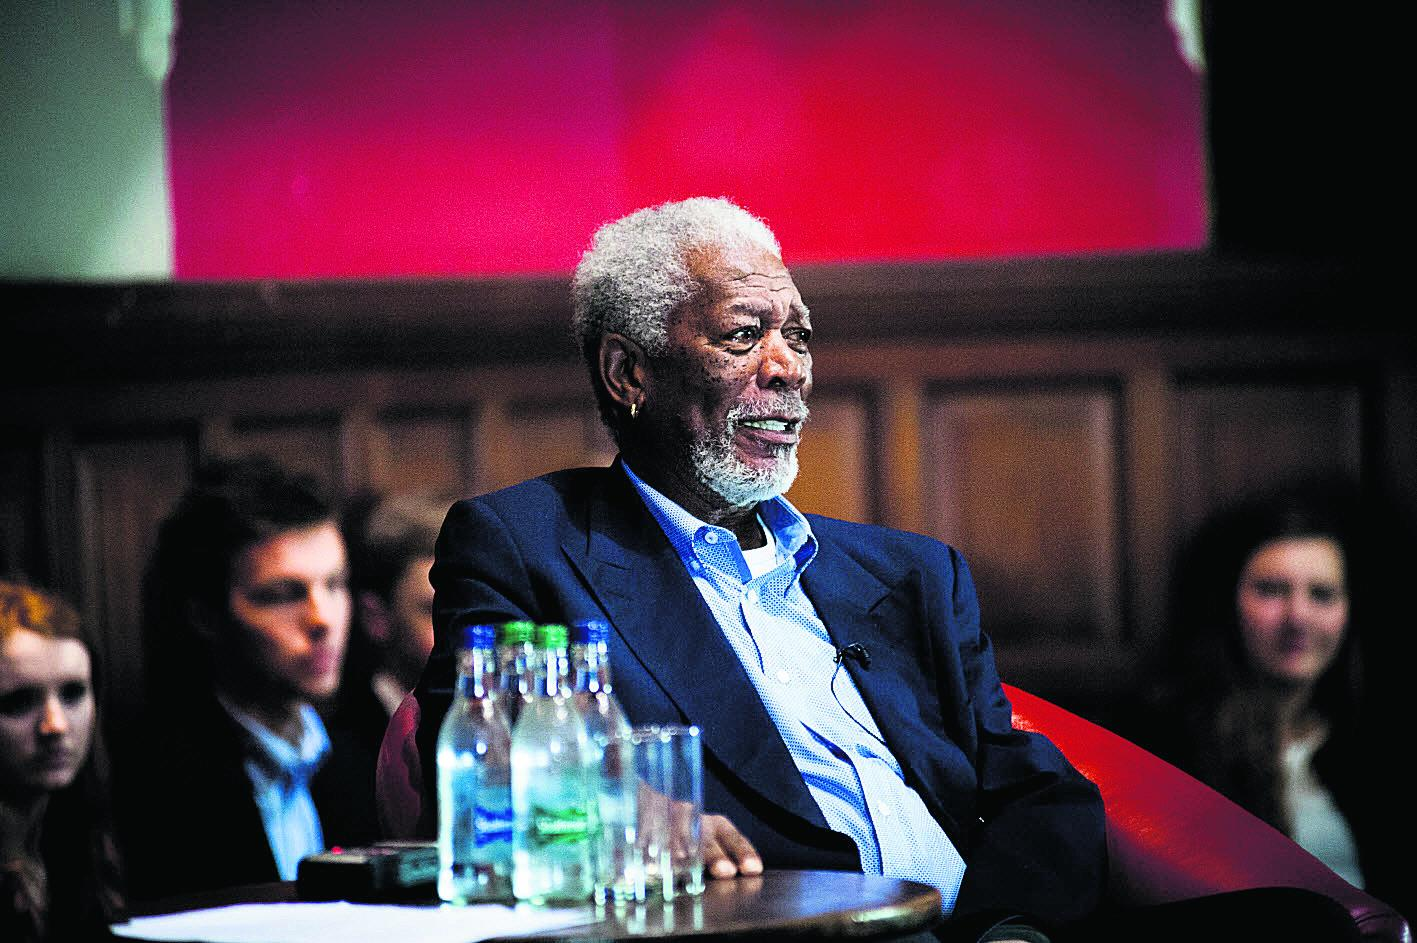 Morgan Freeman at the Oxford Union